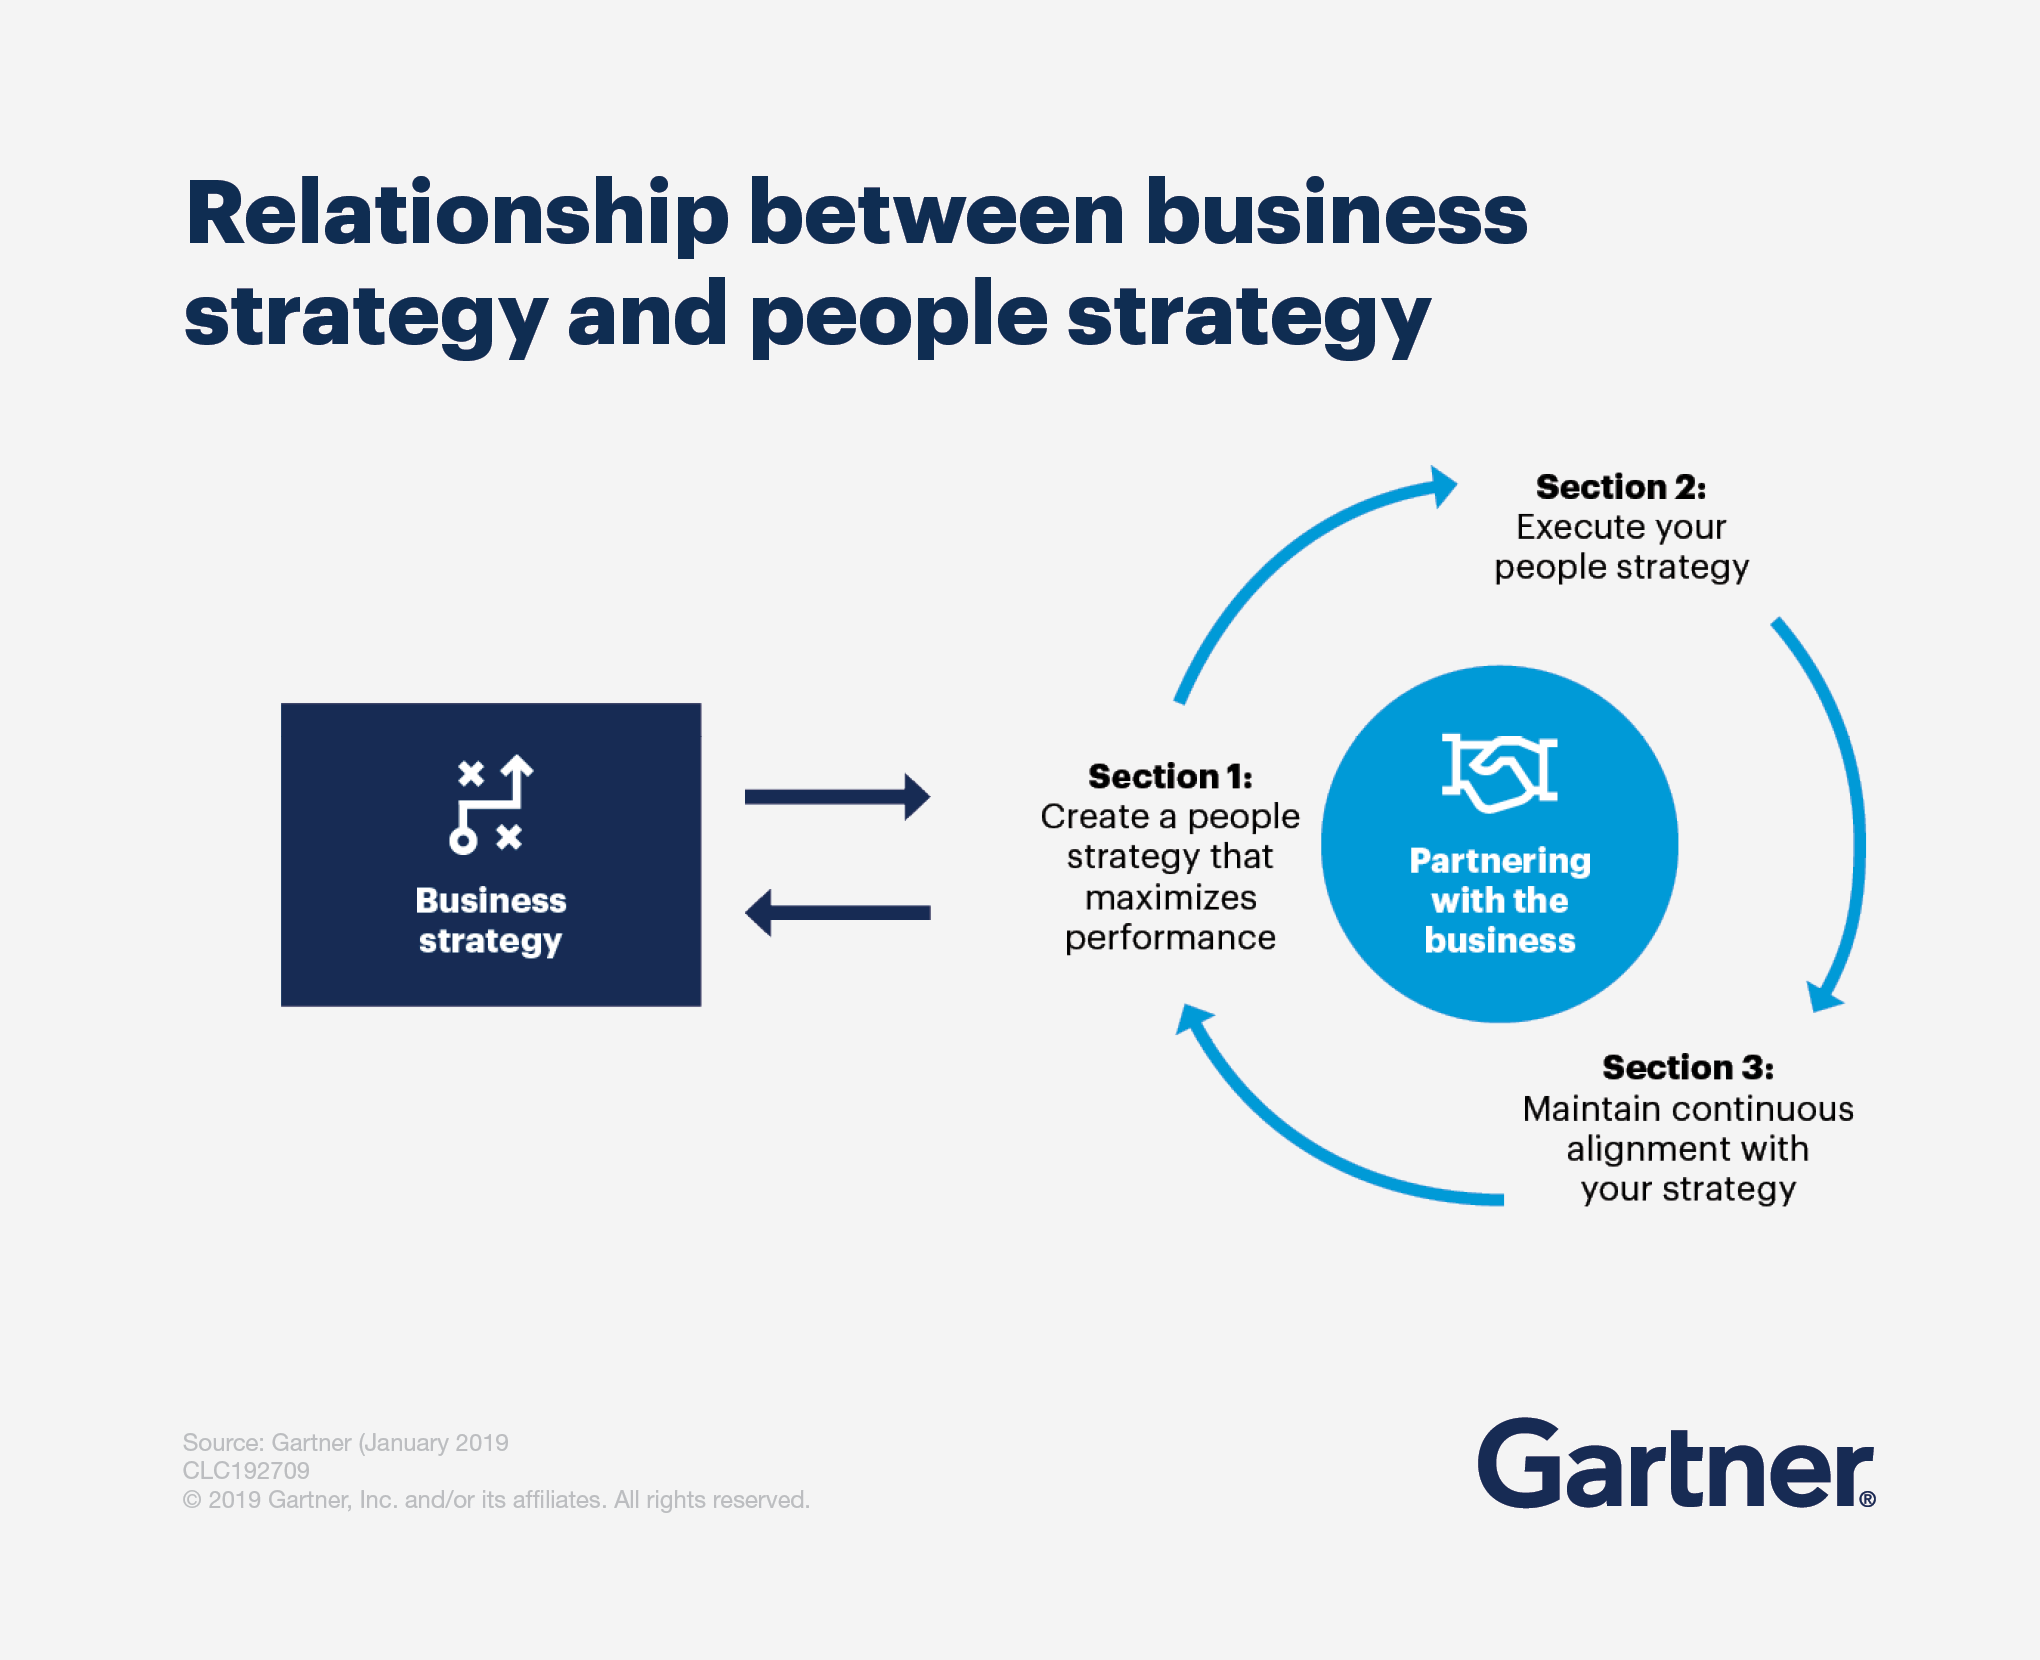 Relationship between business strategy and people strategy